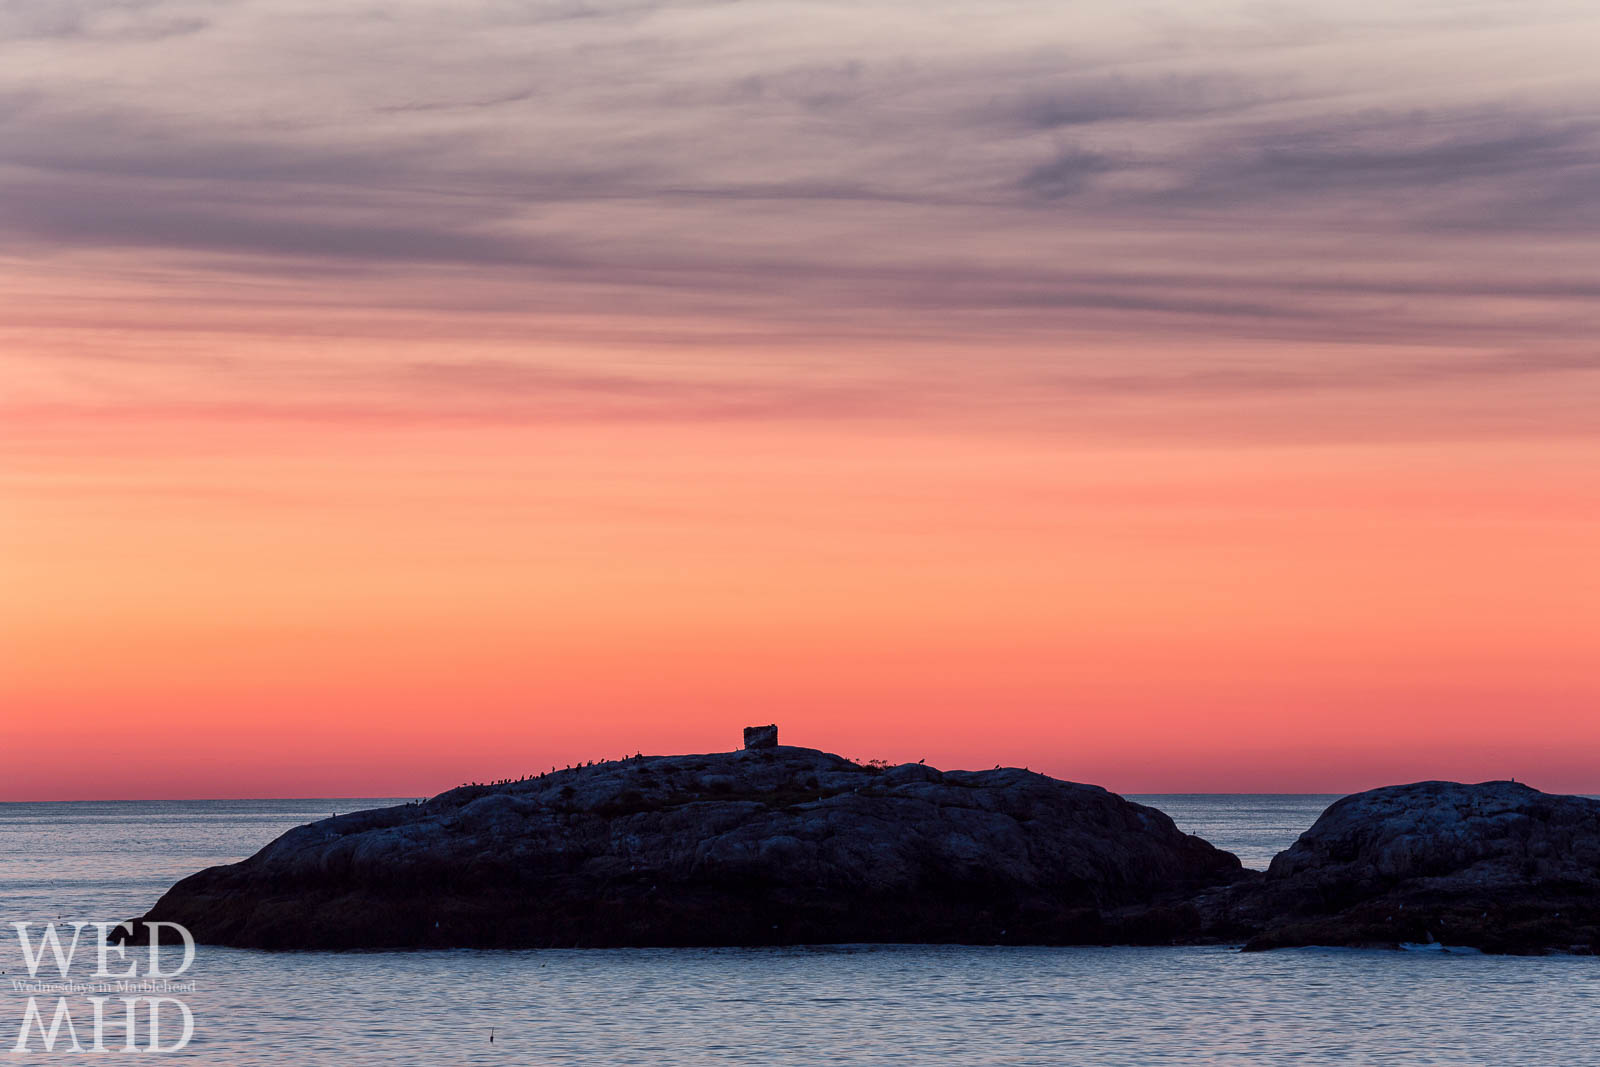 Marblehead Rock in silhouette against the red color of dawn